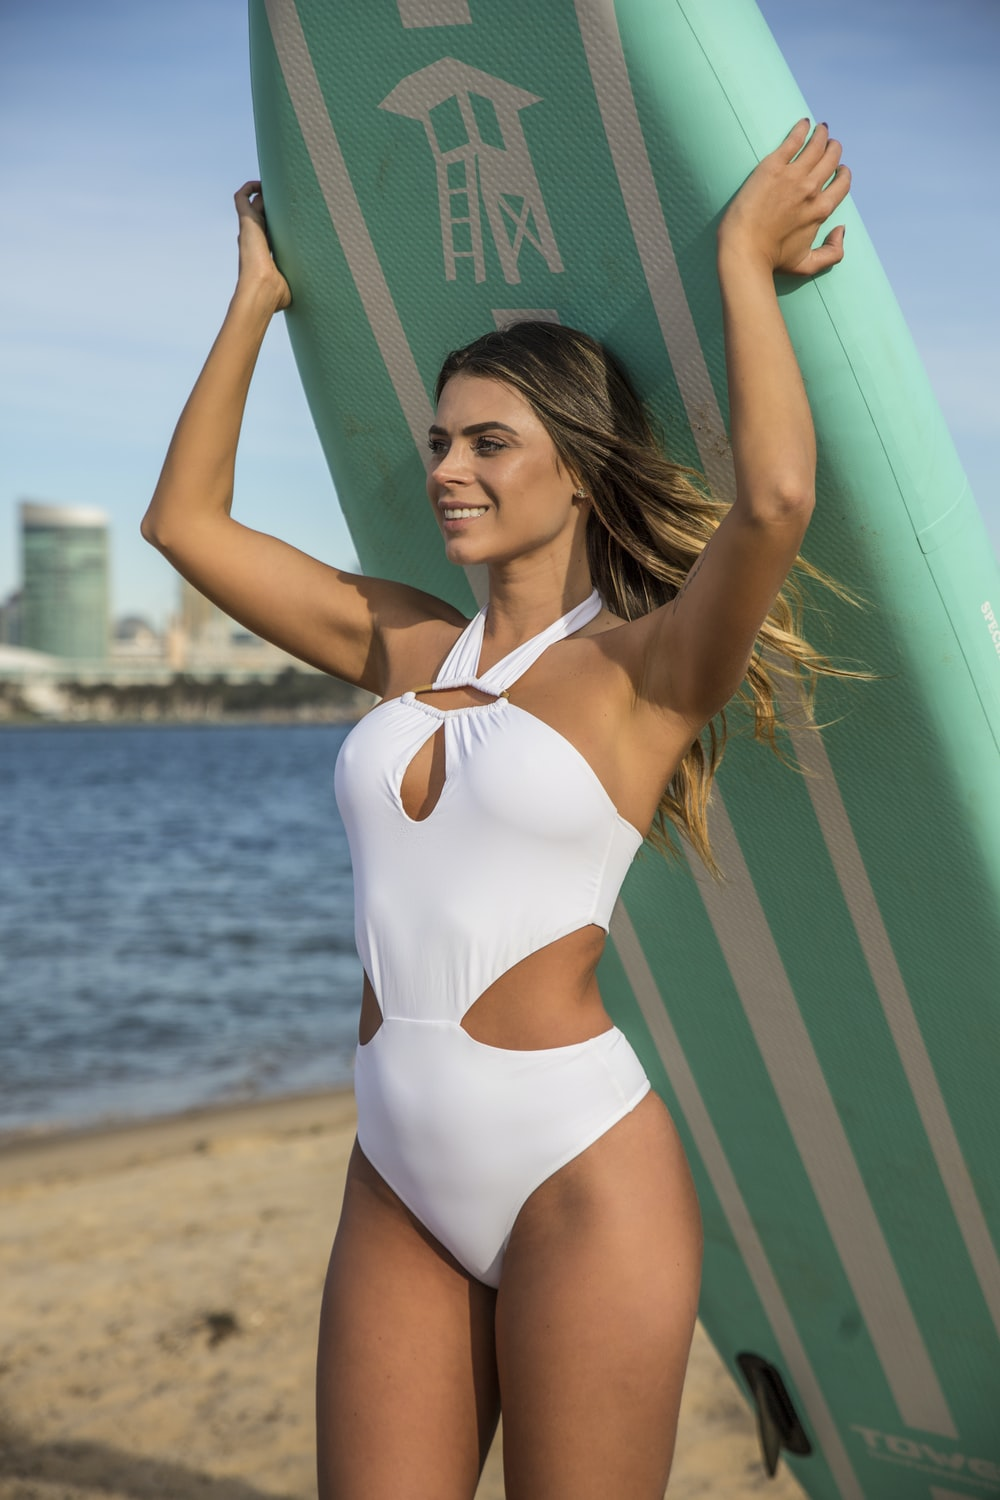 woman in white and blue one piece swimsuit holding green and white striped surfboard during daytime